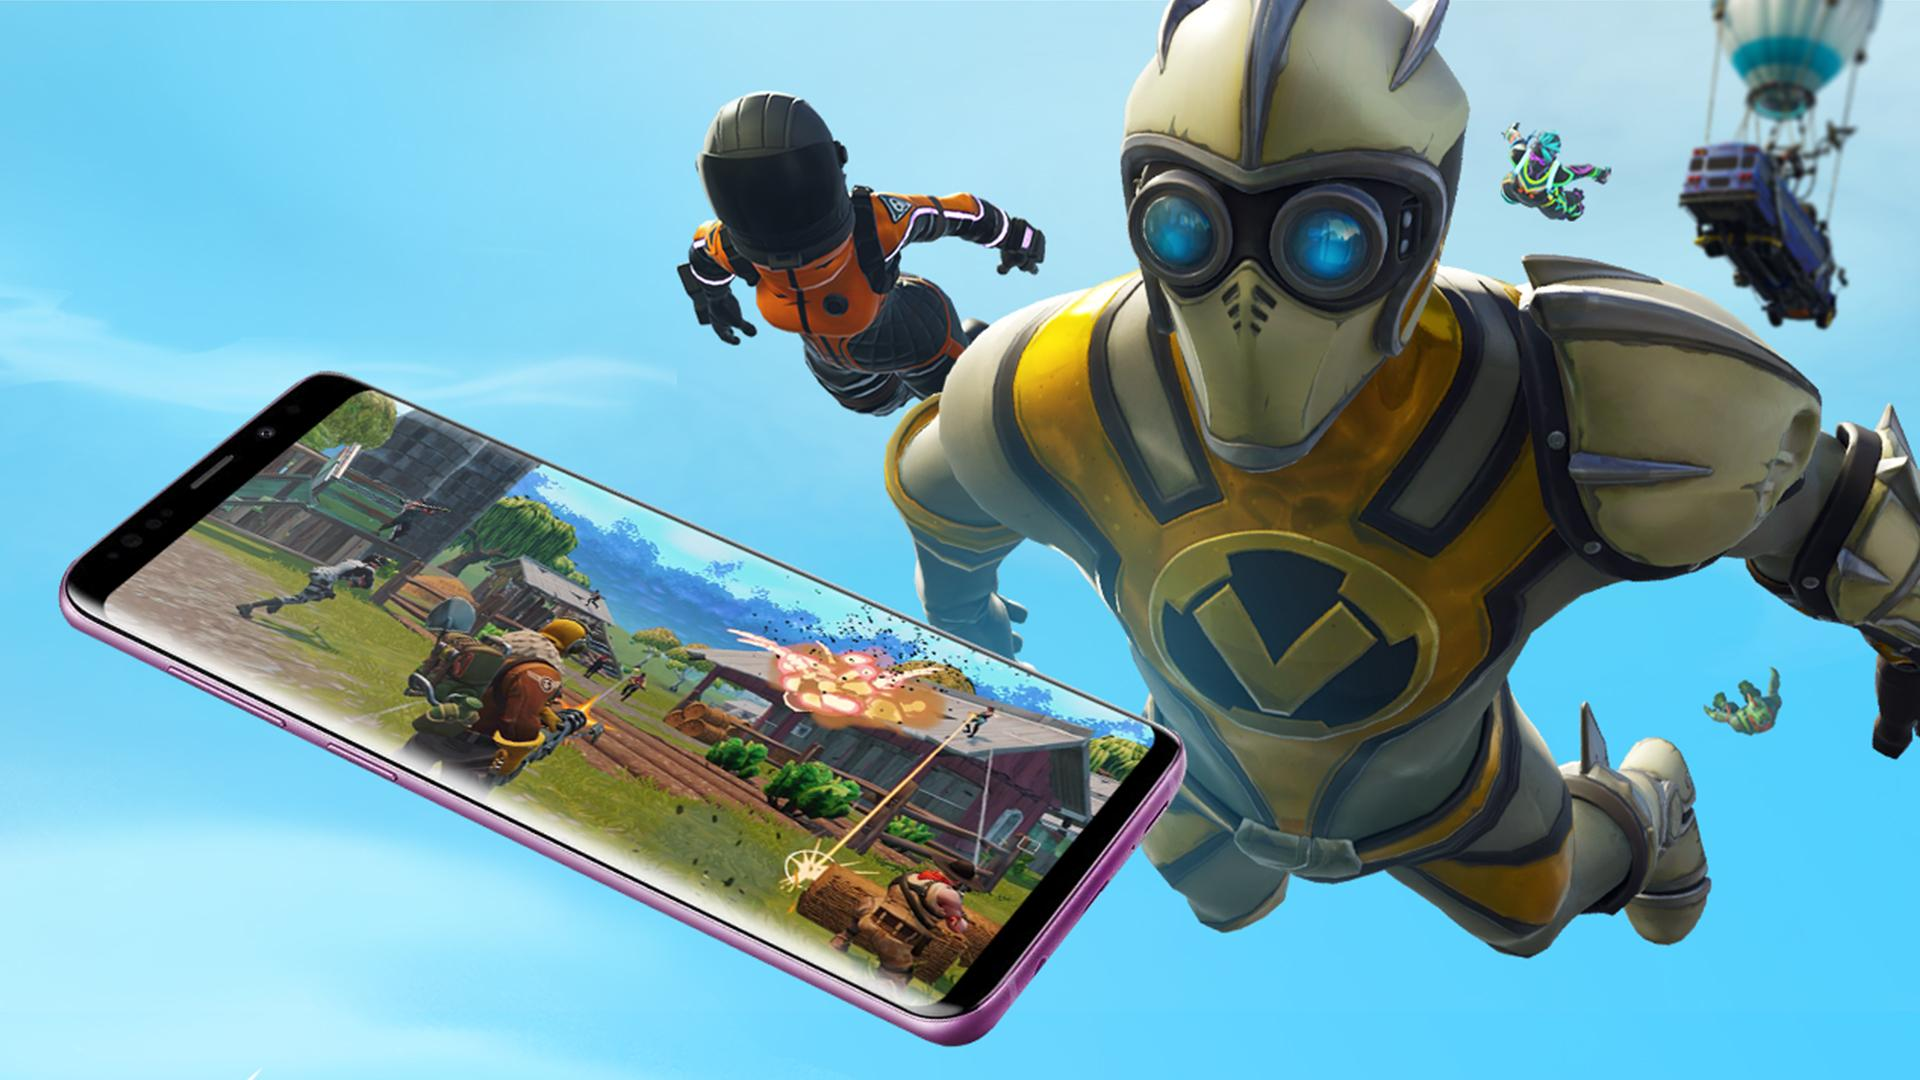 Android Anime Porn Games Apps how to download fortnite for android after epic games